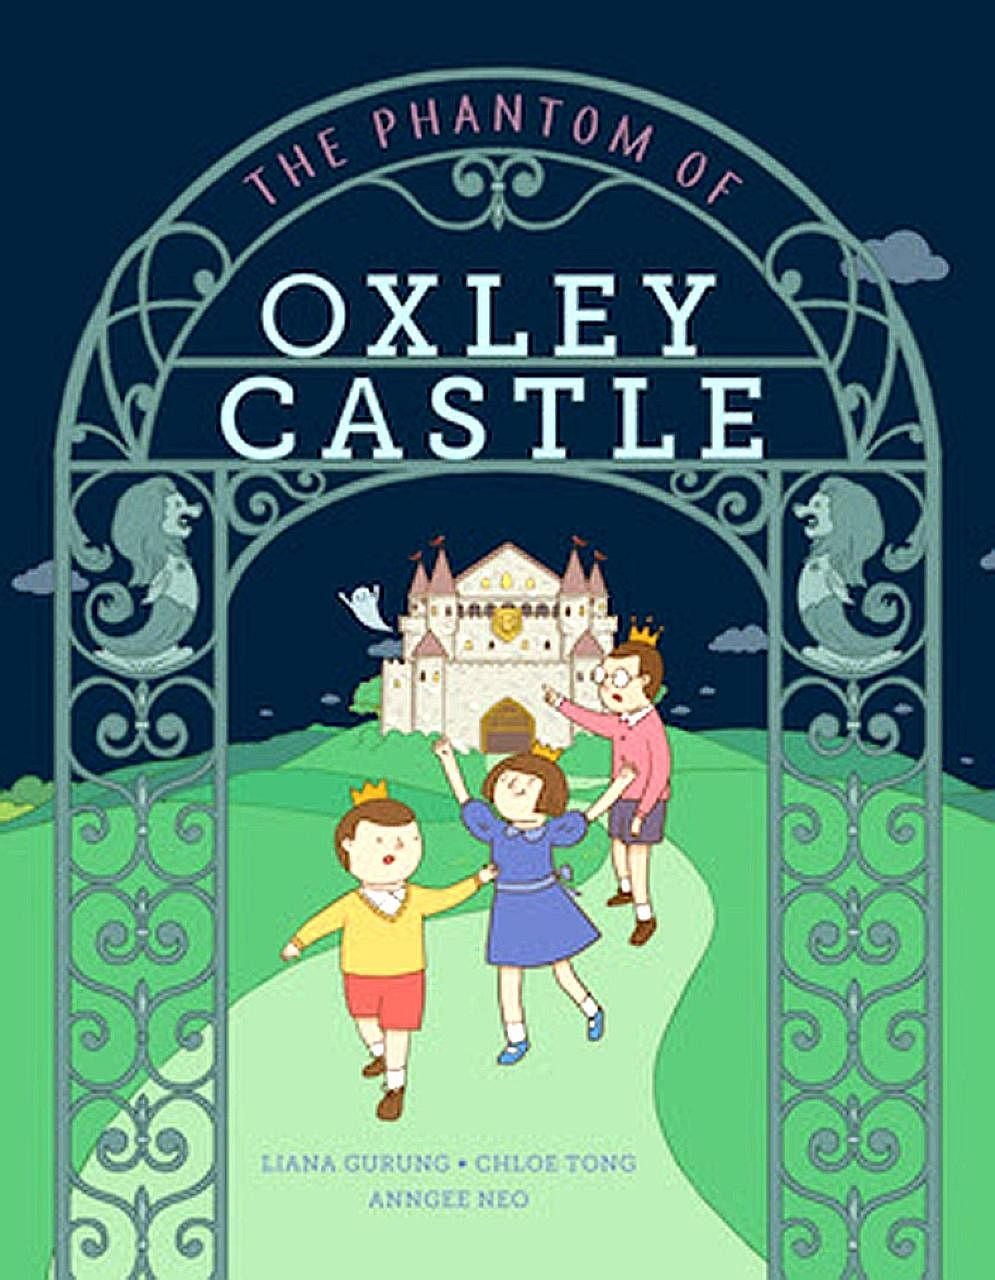 The book is about a grand castle with 38 rooms, located on a tropical island. Two young princes, a princess and their pesky butler named OB Markus live in the castle.